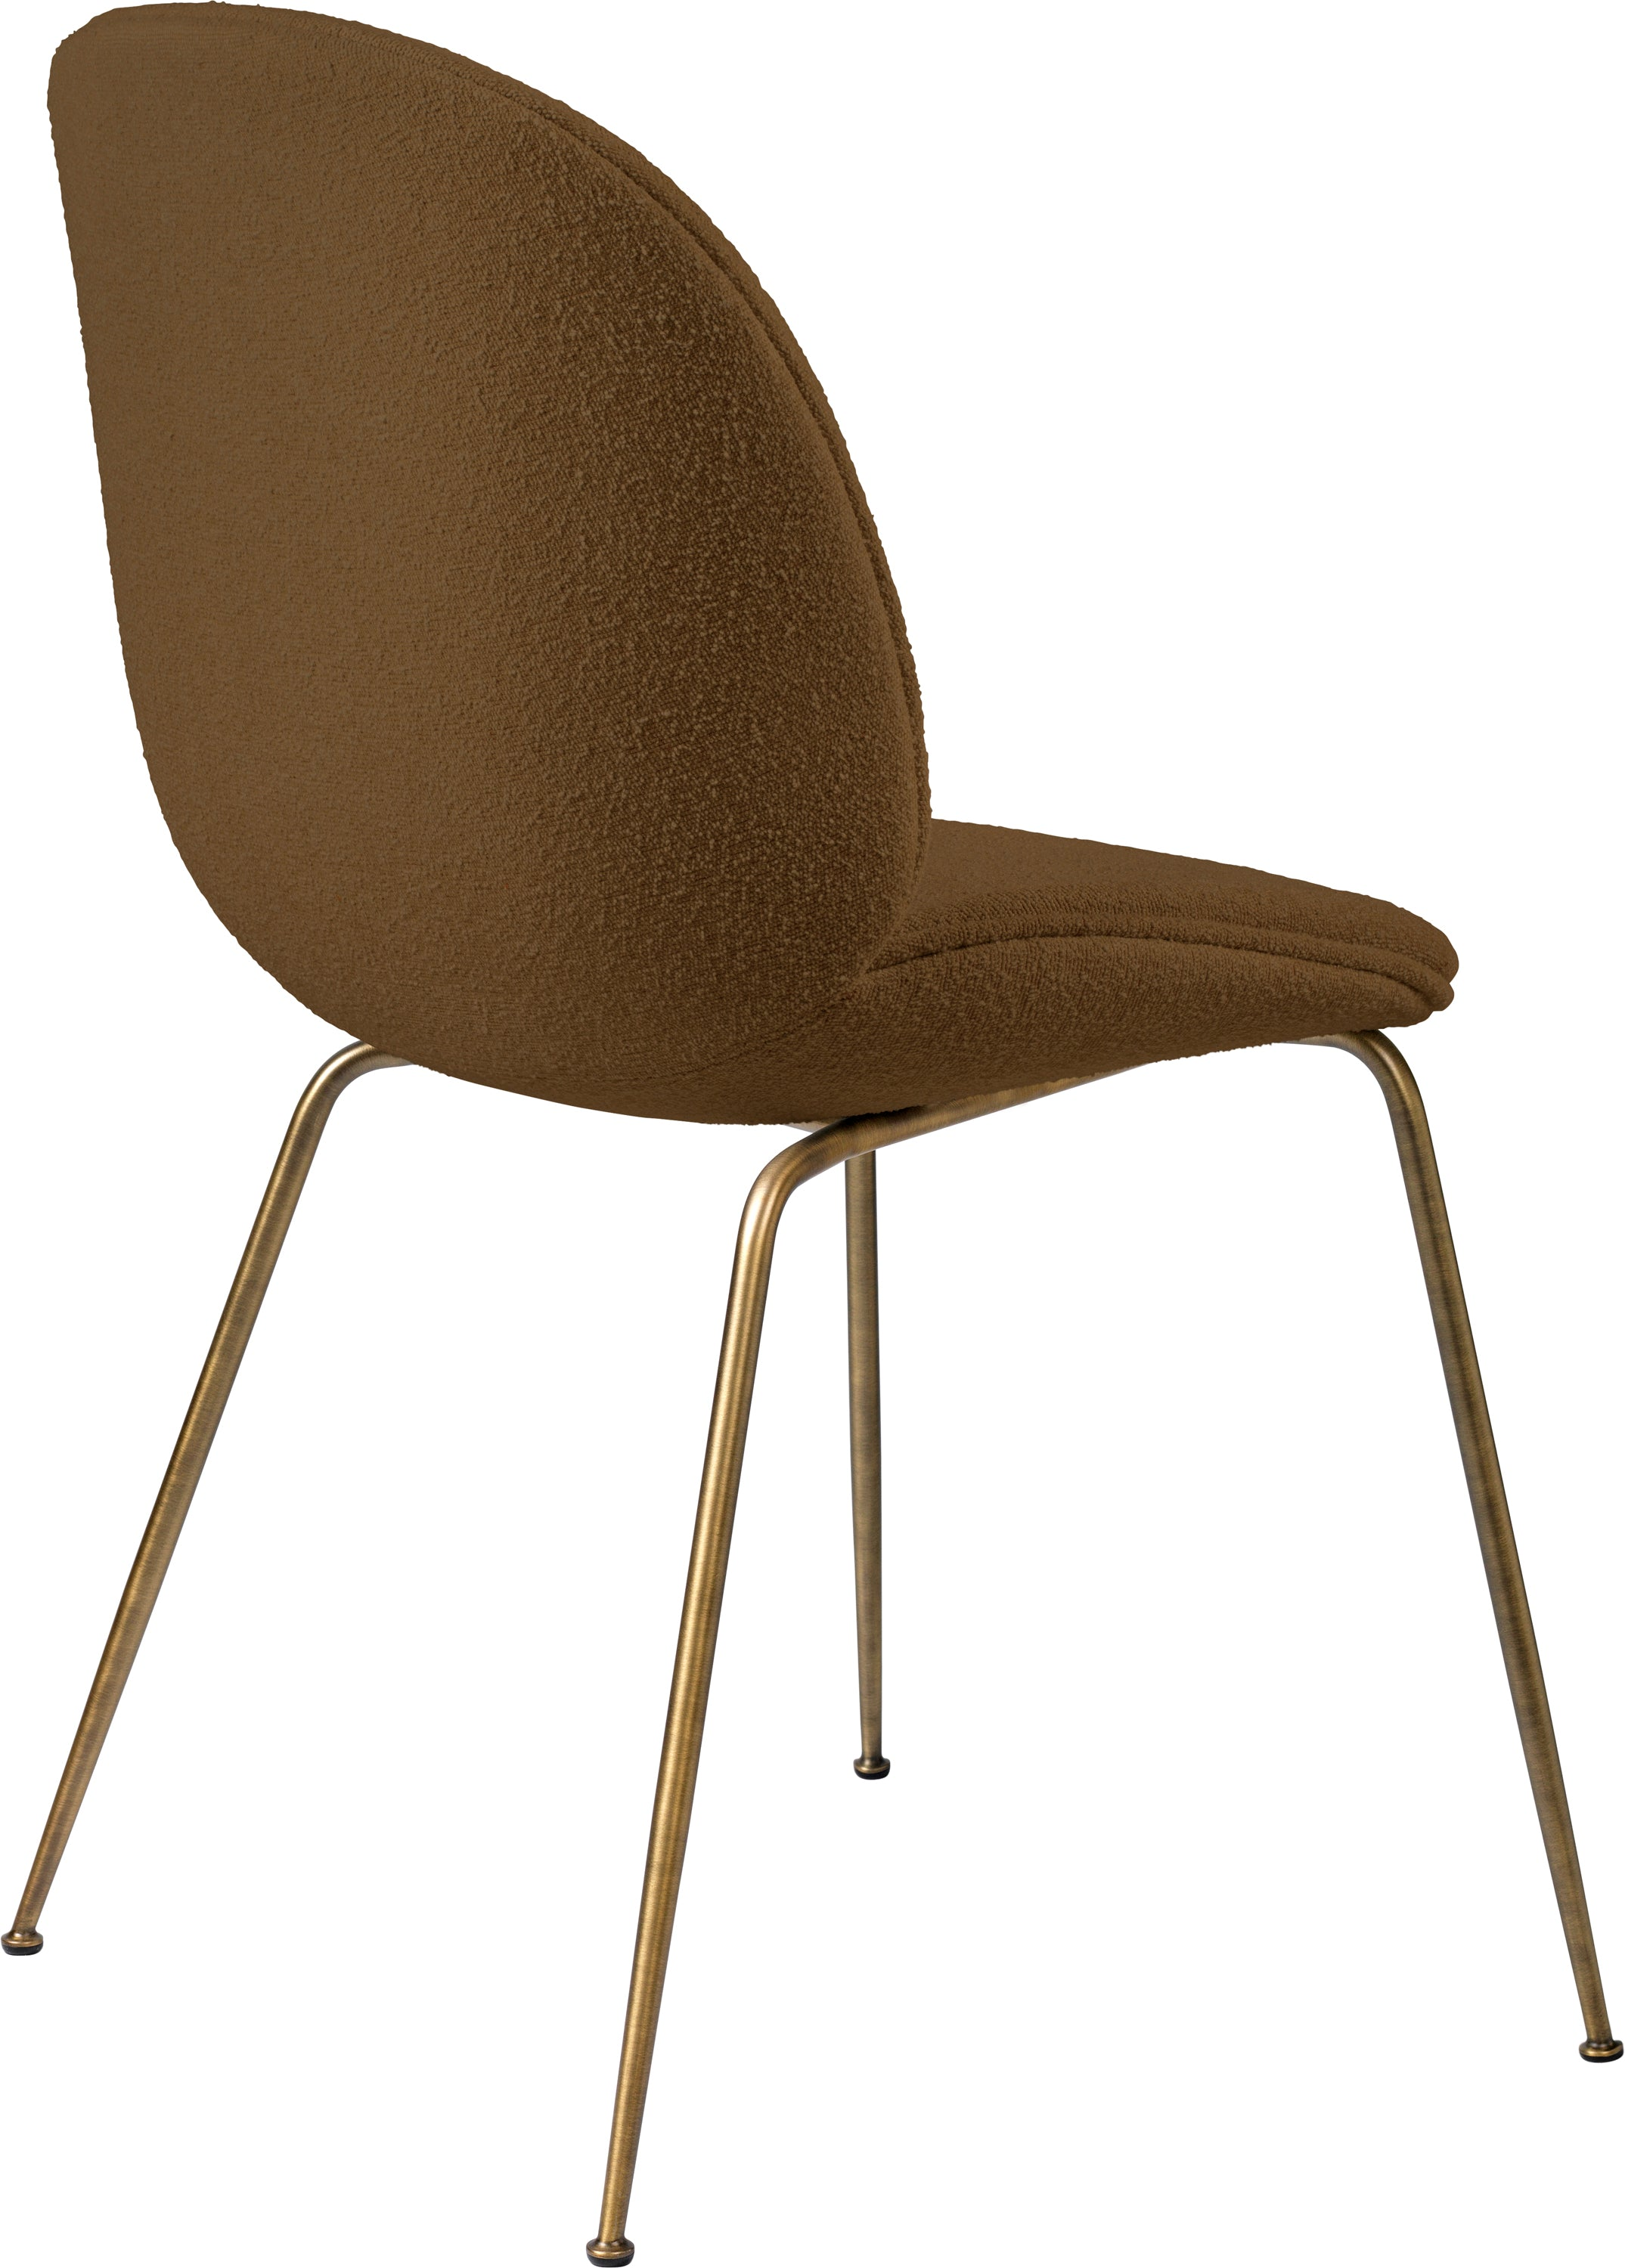 Beetle Dining Chair (Fully), Antique Brass, Grp 02, Light Bouclé, GUBI (006) Light Bouclé fra GUBI